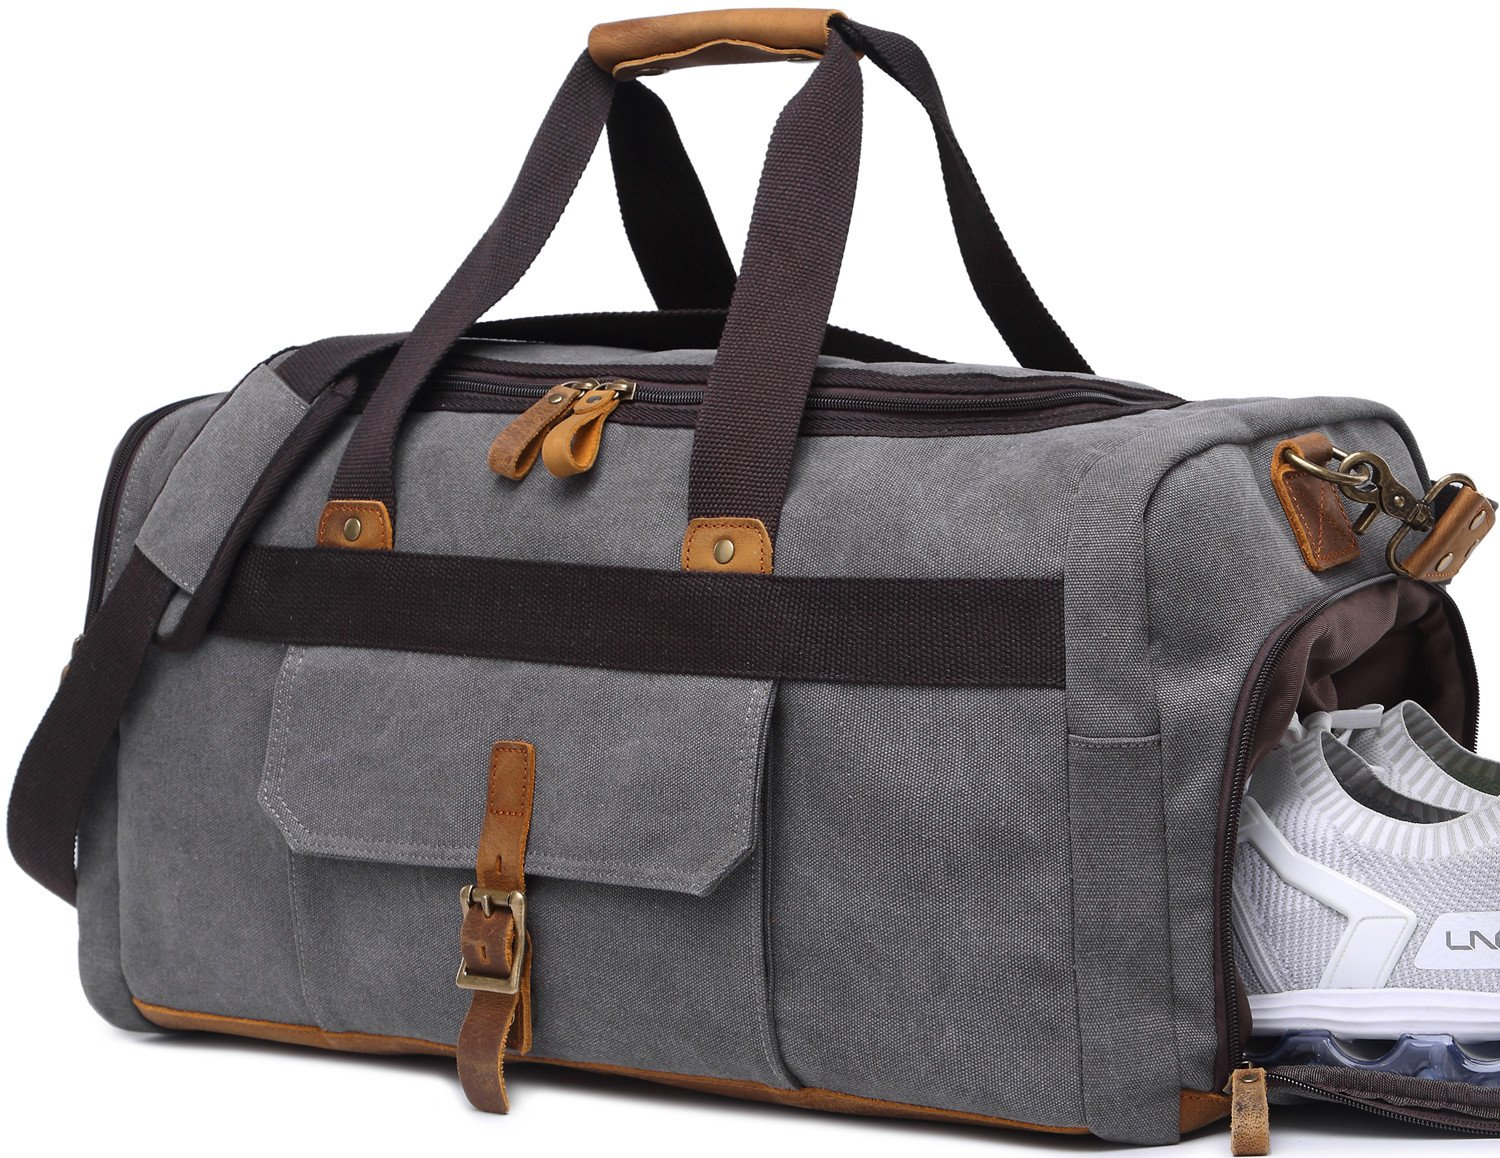 Weekender Overnight Duffel Bag with Shoes Compartment for Women Men Canvas Weekend Travel Tote Carry On Bag by BLUBOON